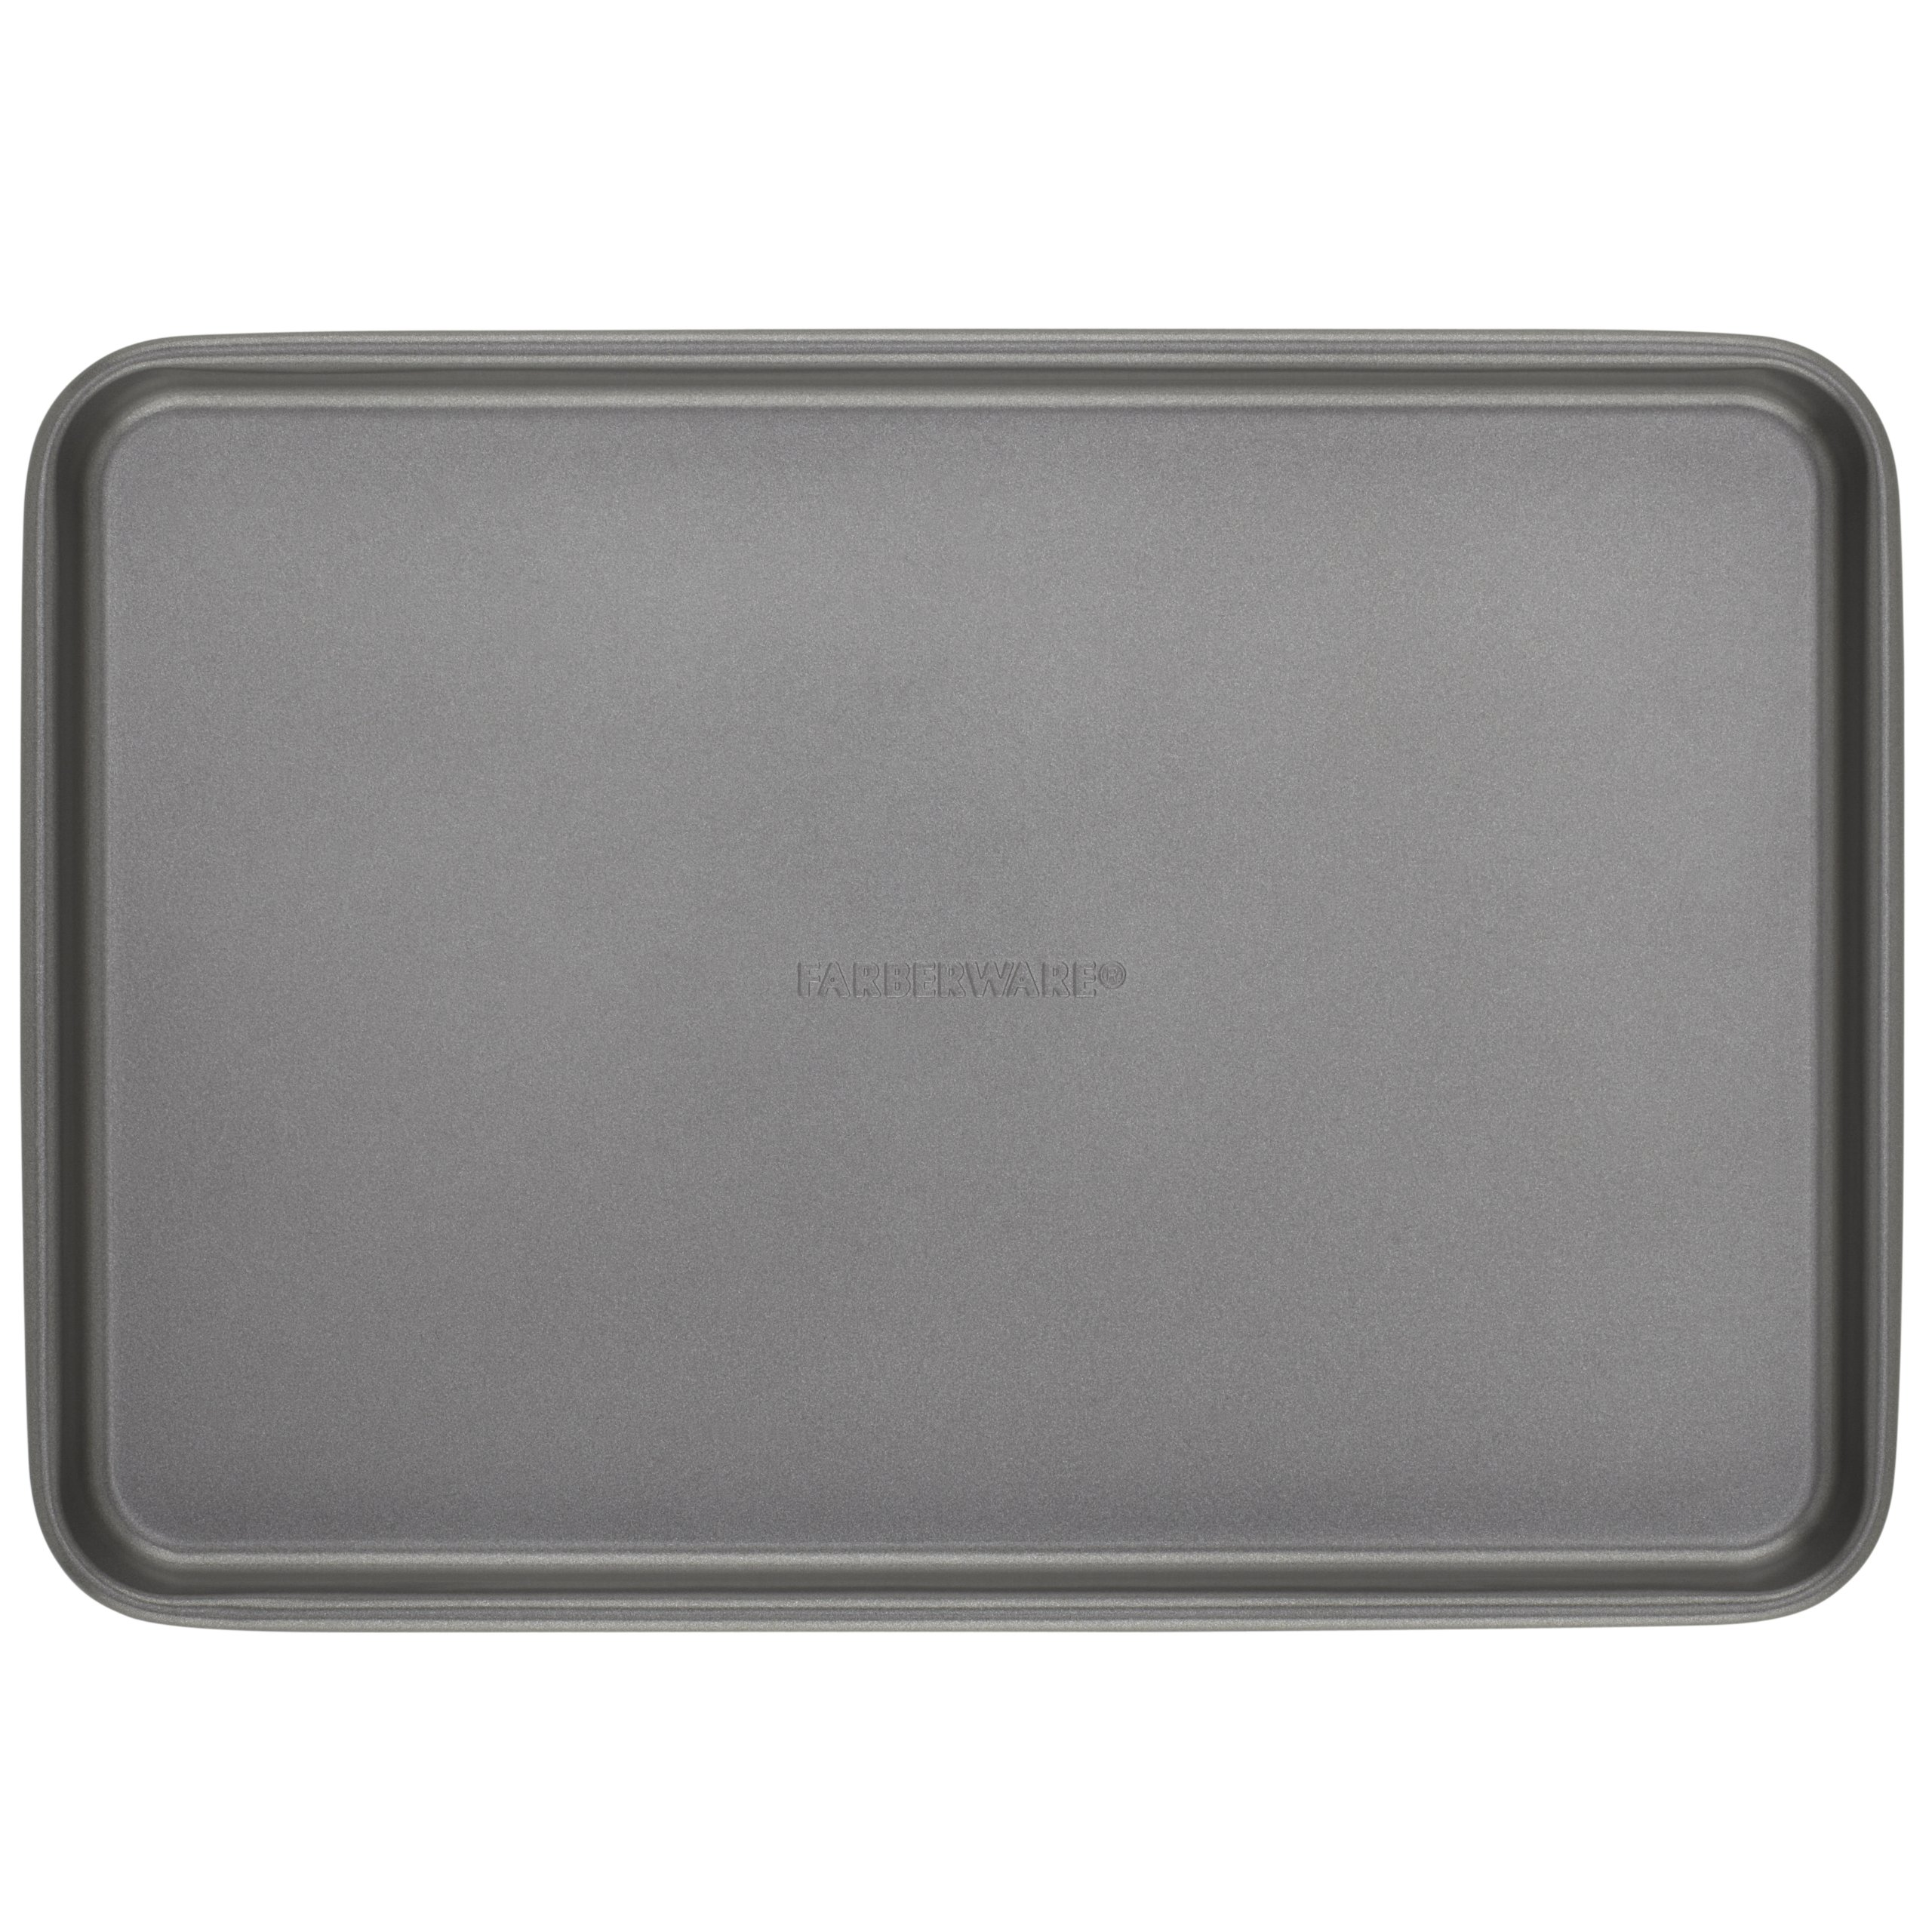 Farberware Nonstick Bakeware 11-Inch x 15-Inch Roaster with Flat Rack, Gray by Farberware (Image #2)